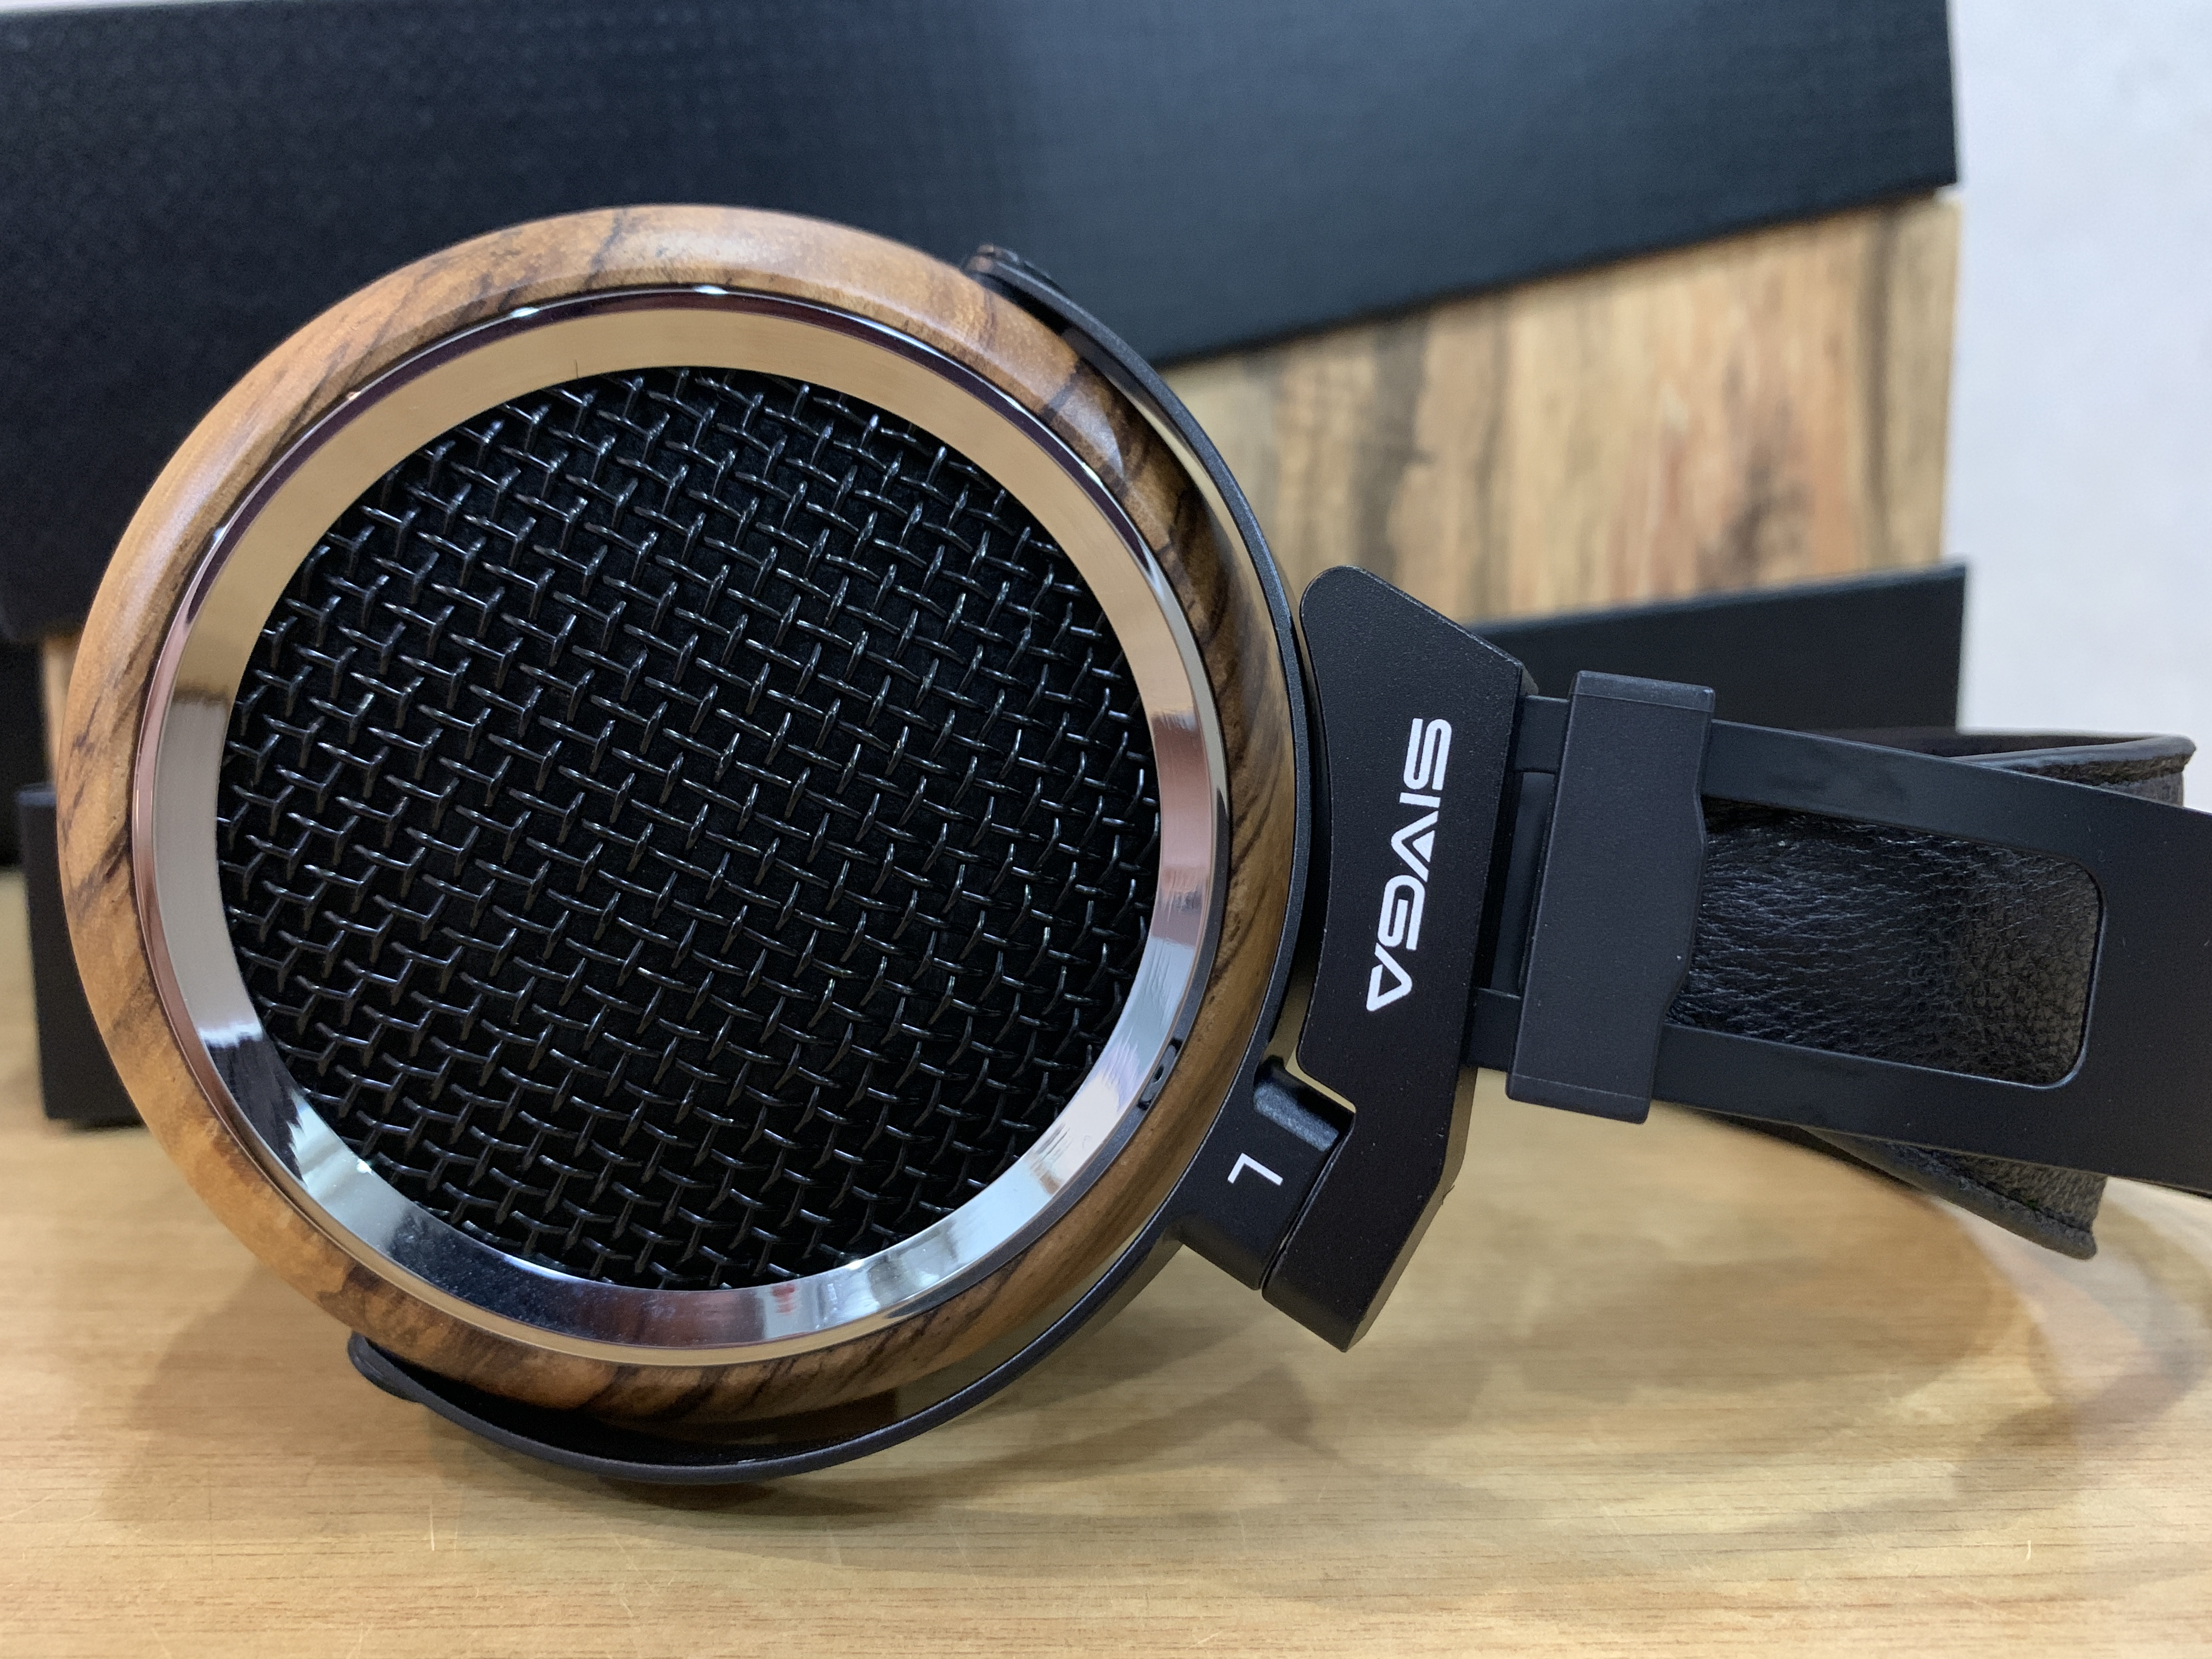 The Phoenix's warm and lush sound signature is definitely one of the selling points of them, together with the premium zebra wood ear cups and comfortable wearing experience.